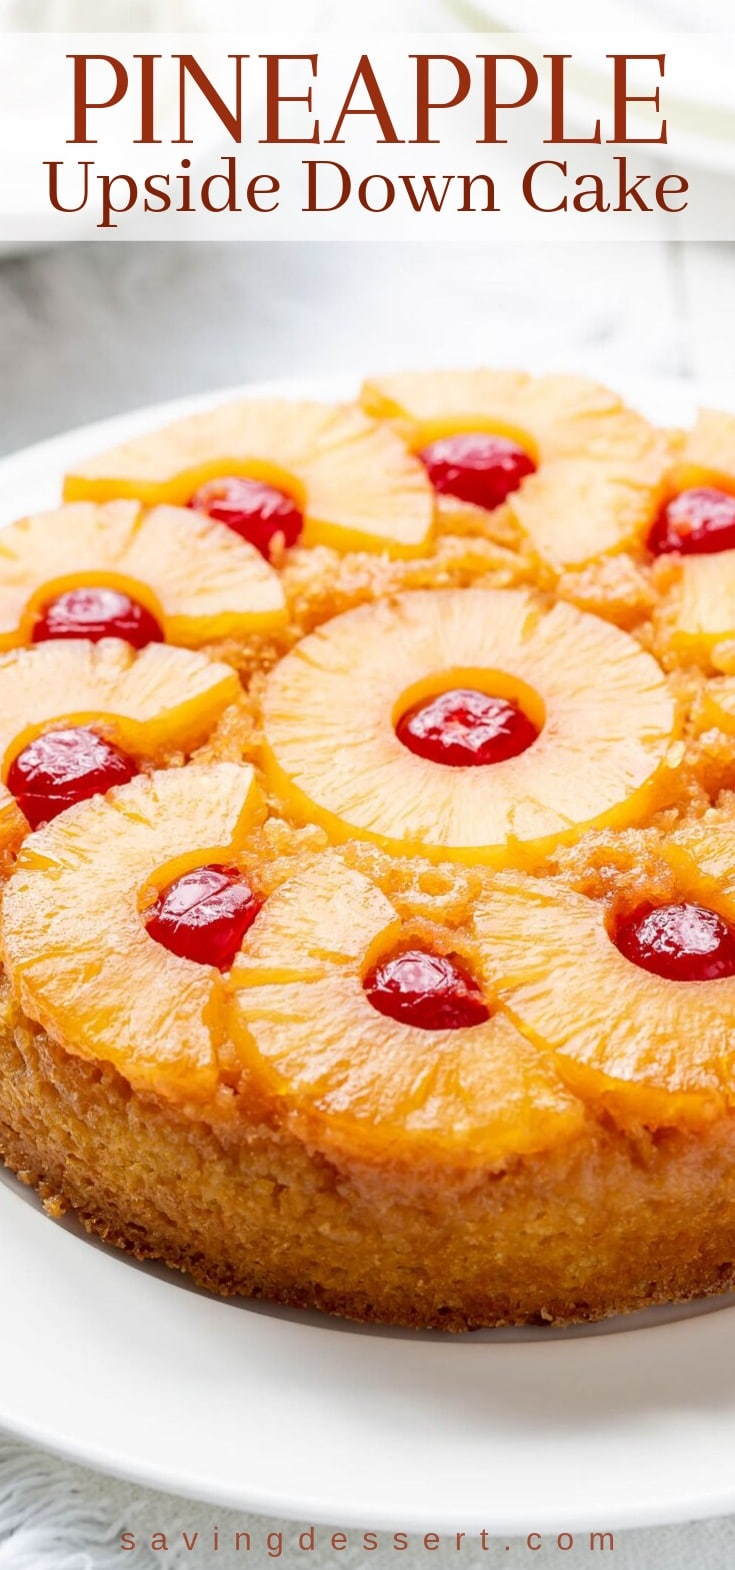 A close-up of pineapple upside down cake